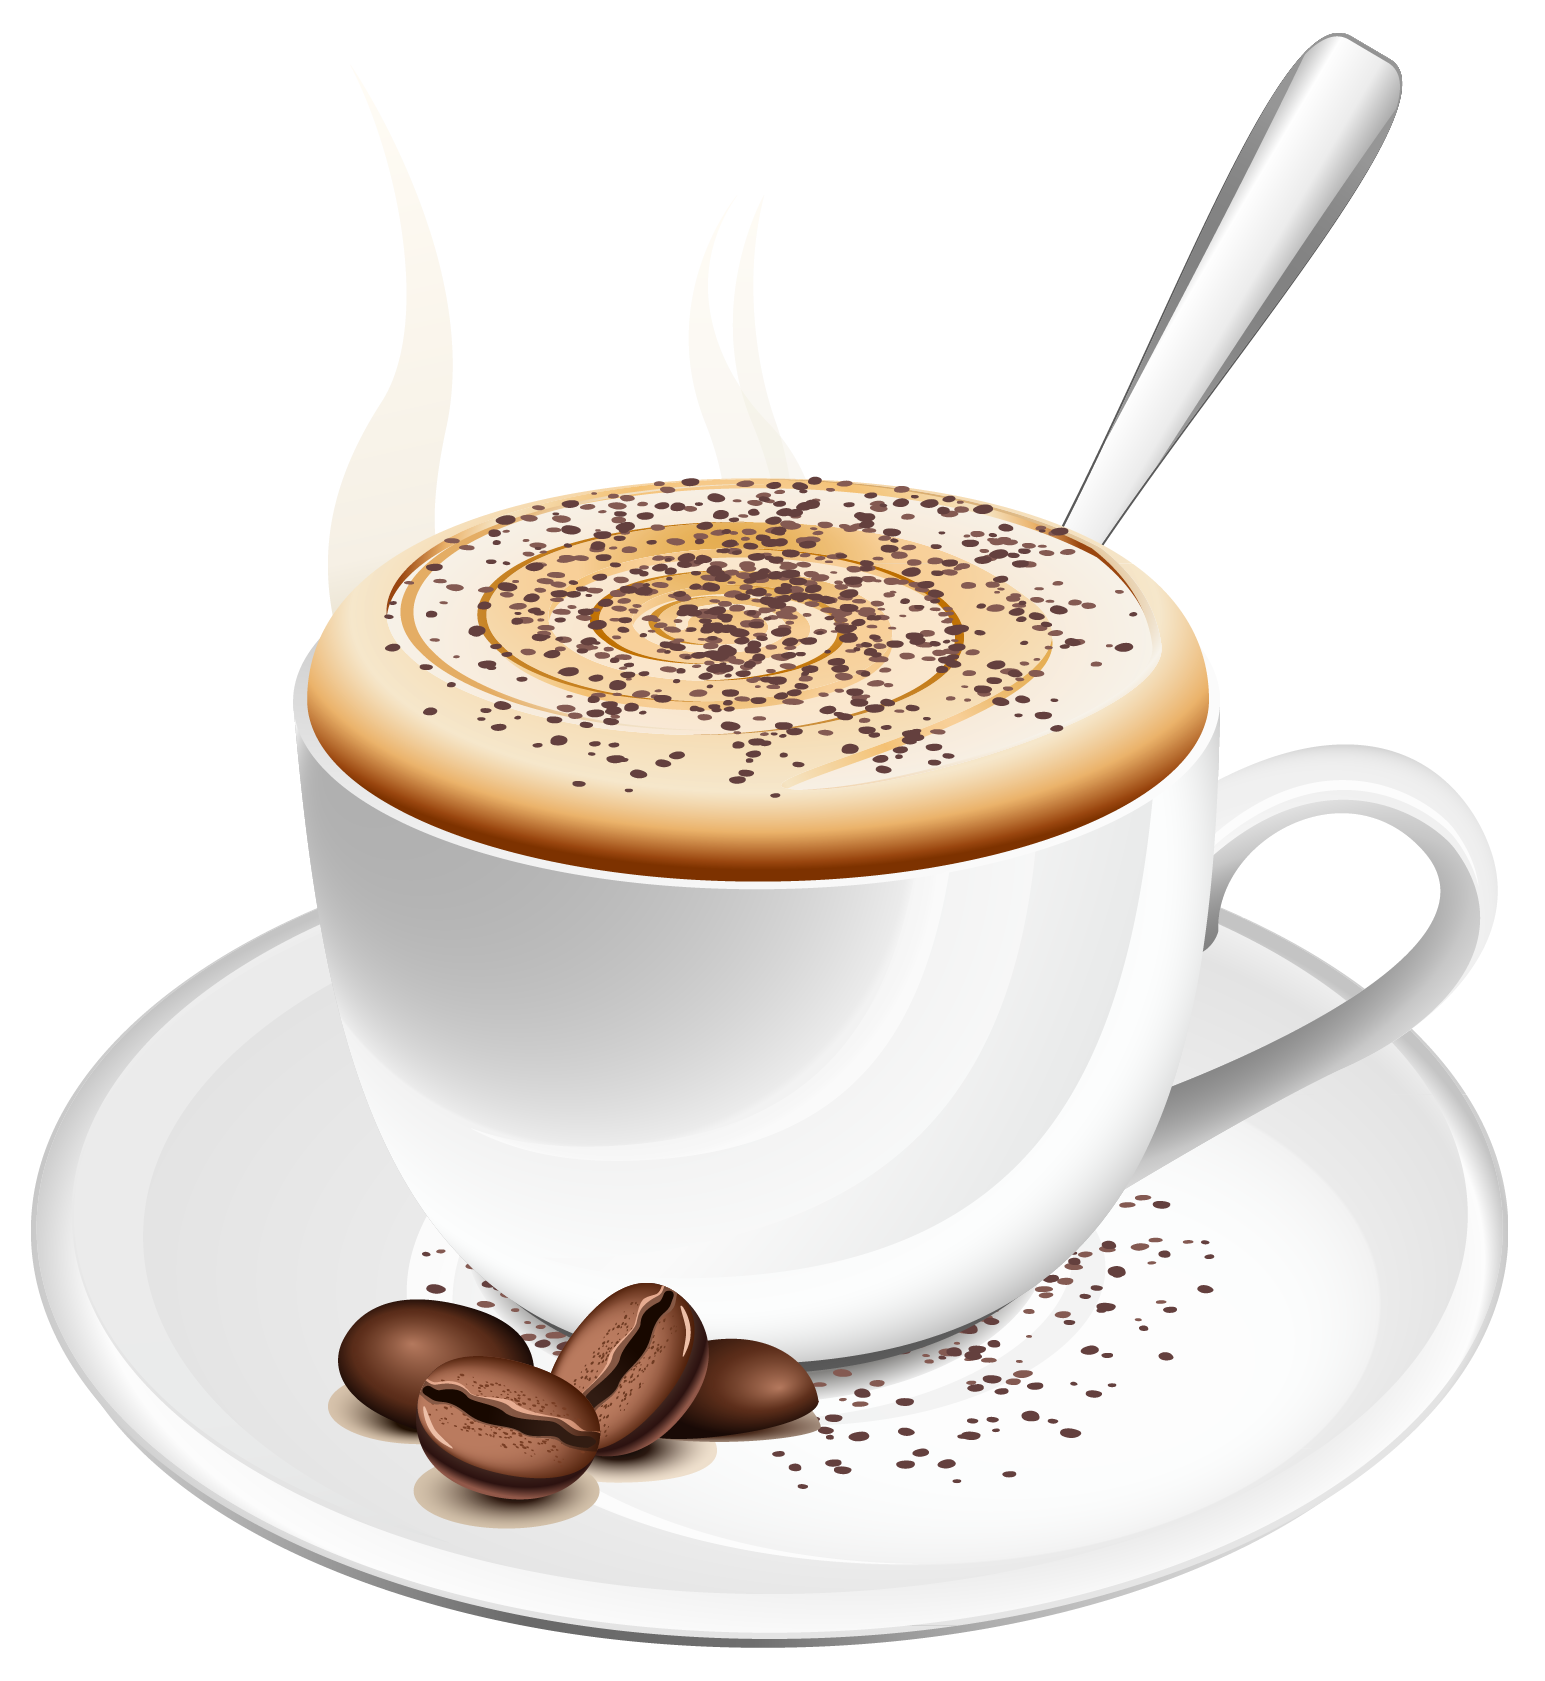 Coffee clipart png. Cup of